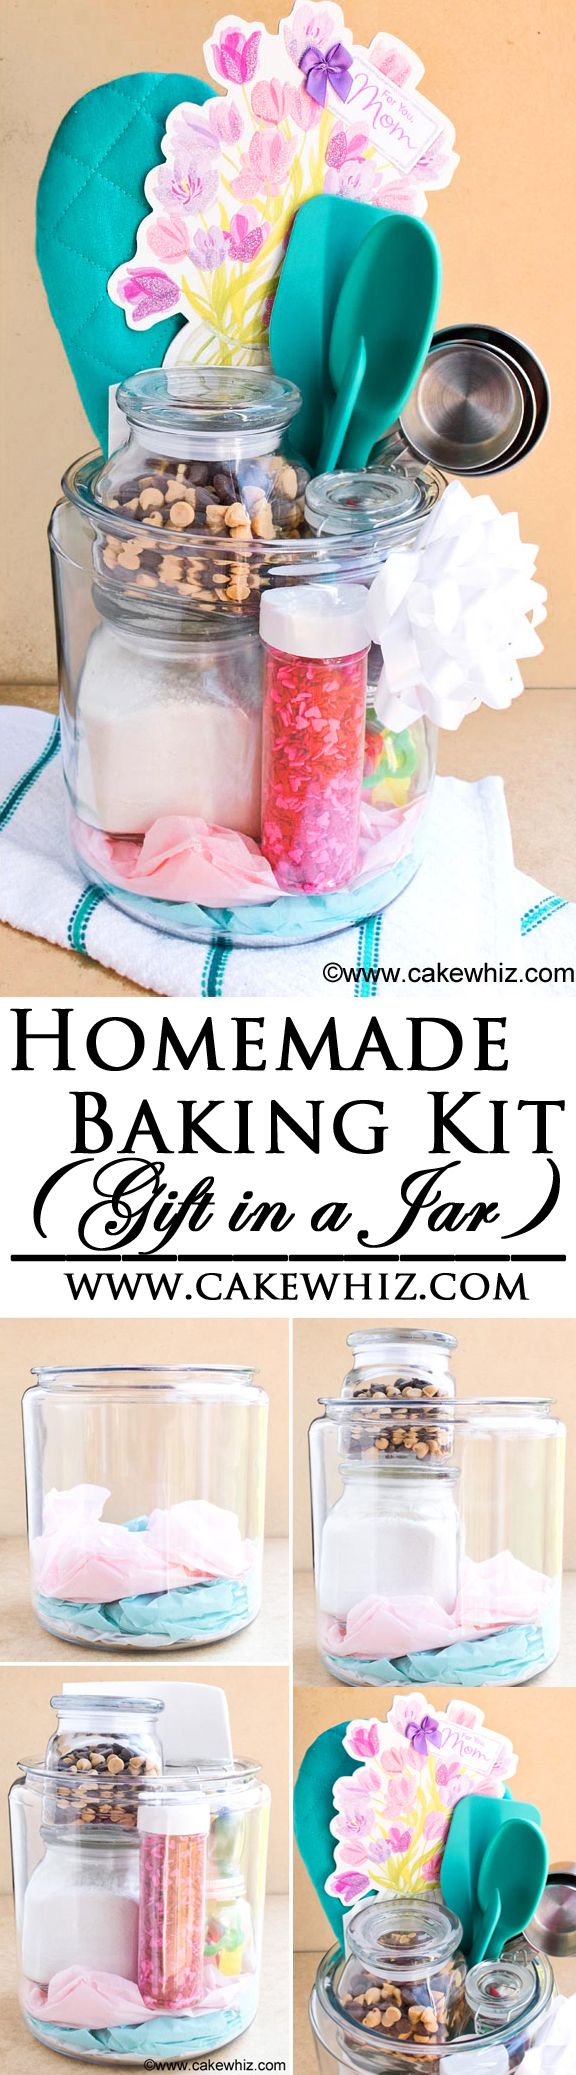 Use this step by step tutorial to make an easy and beautiful HOMEMADE BAKING KIT! It's the perfect gift in a jar for bakers and cake decorators (Ad). From cakewhiz.com @amgreetings